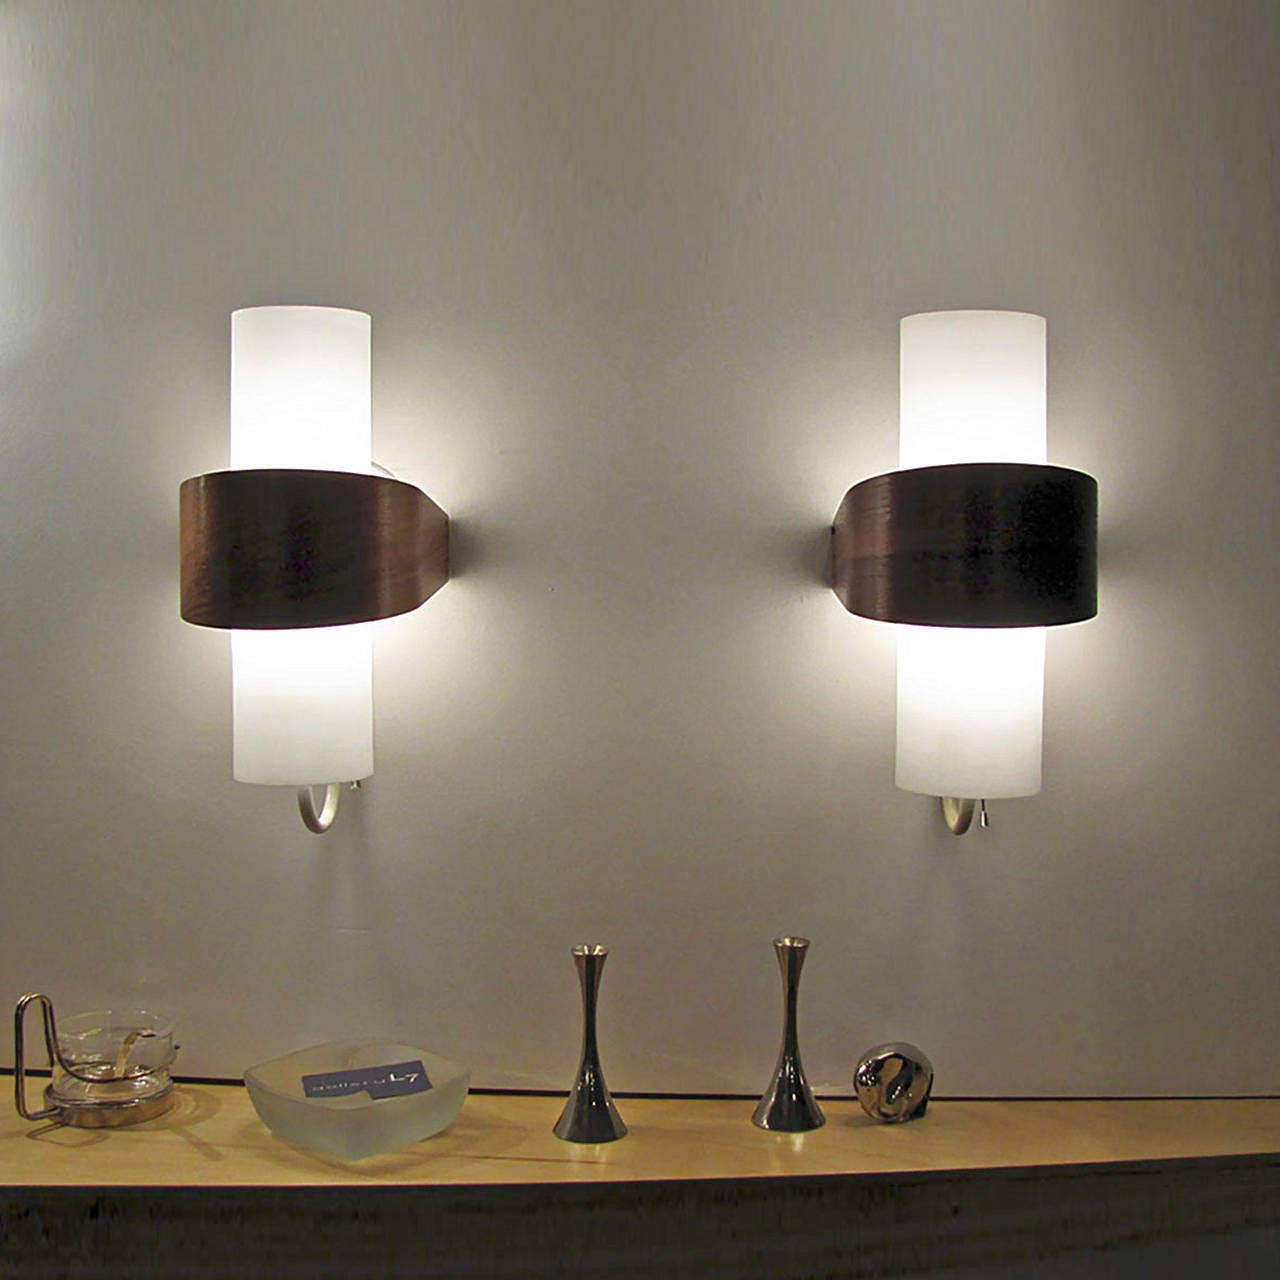 Philips Wall Lights Catalogue : Philips Wall Lights NX40 For Sale at 1stdibs